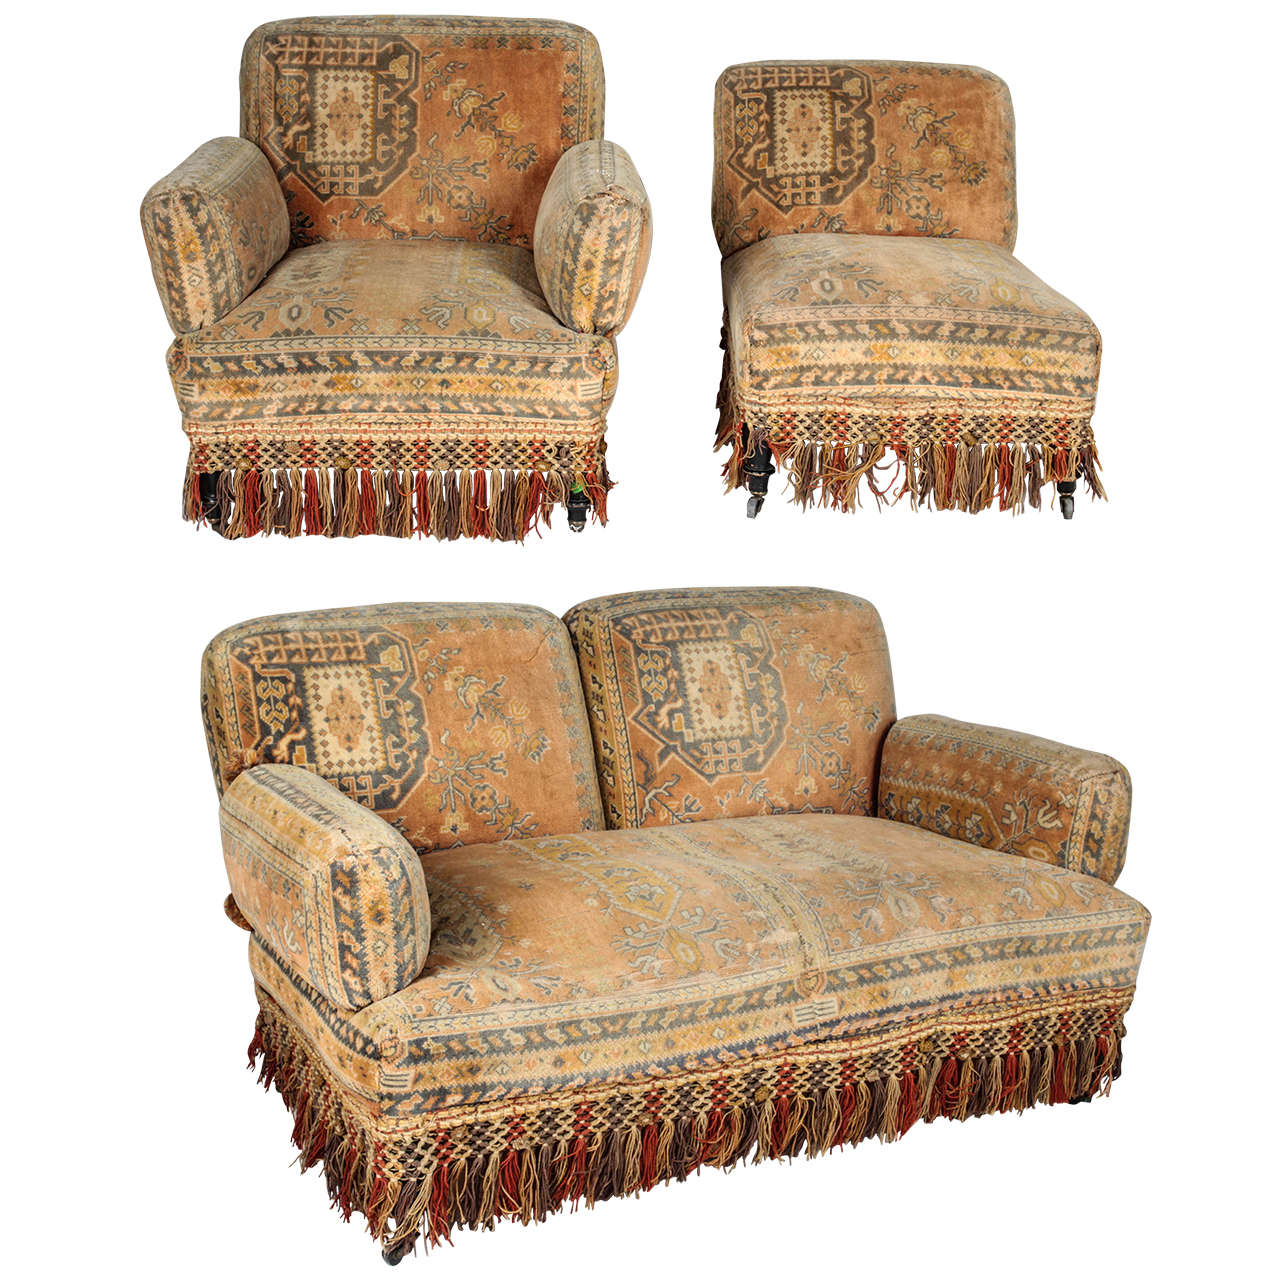 19th century au bon marche moorish tapestry sofa and for Living room furniture sets australia